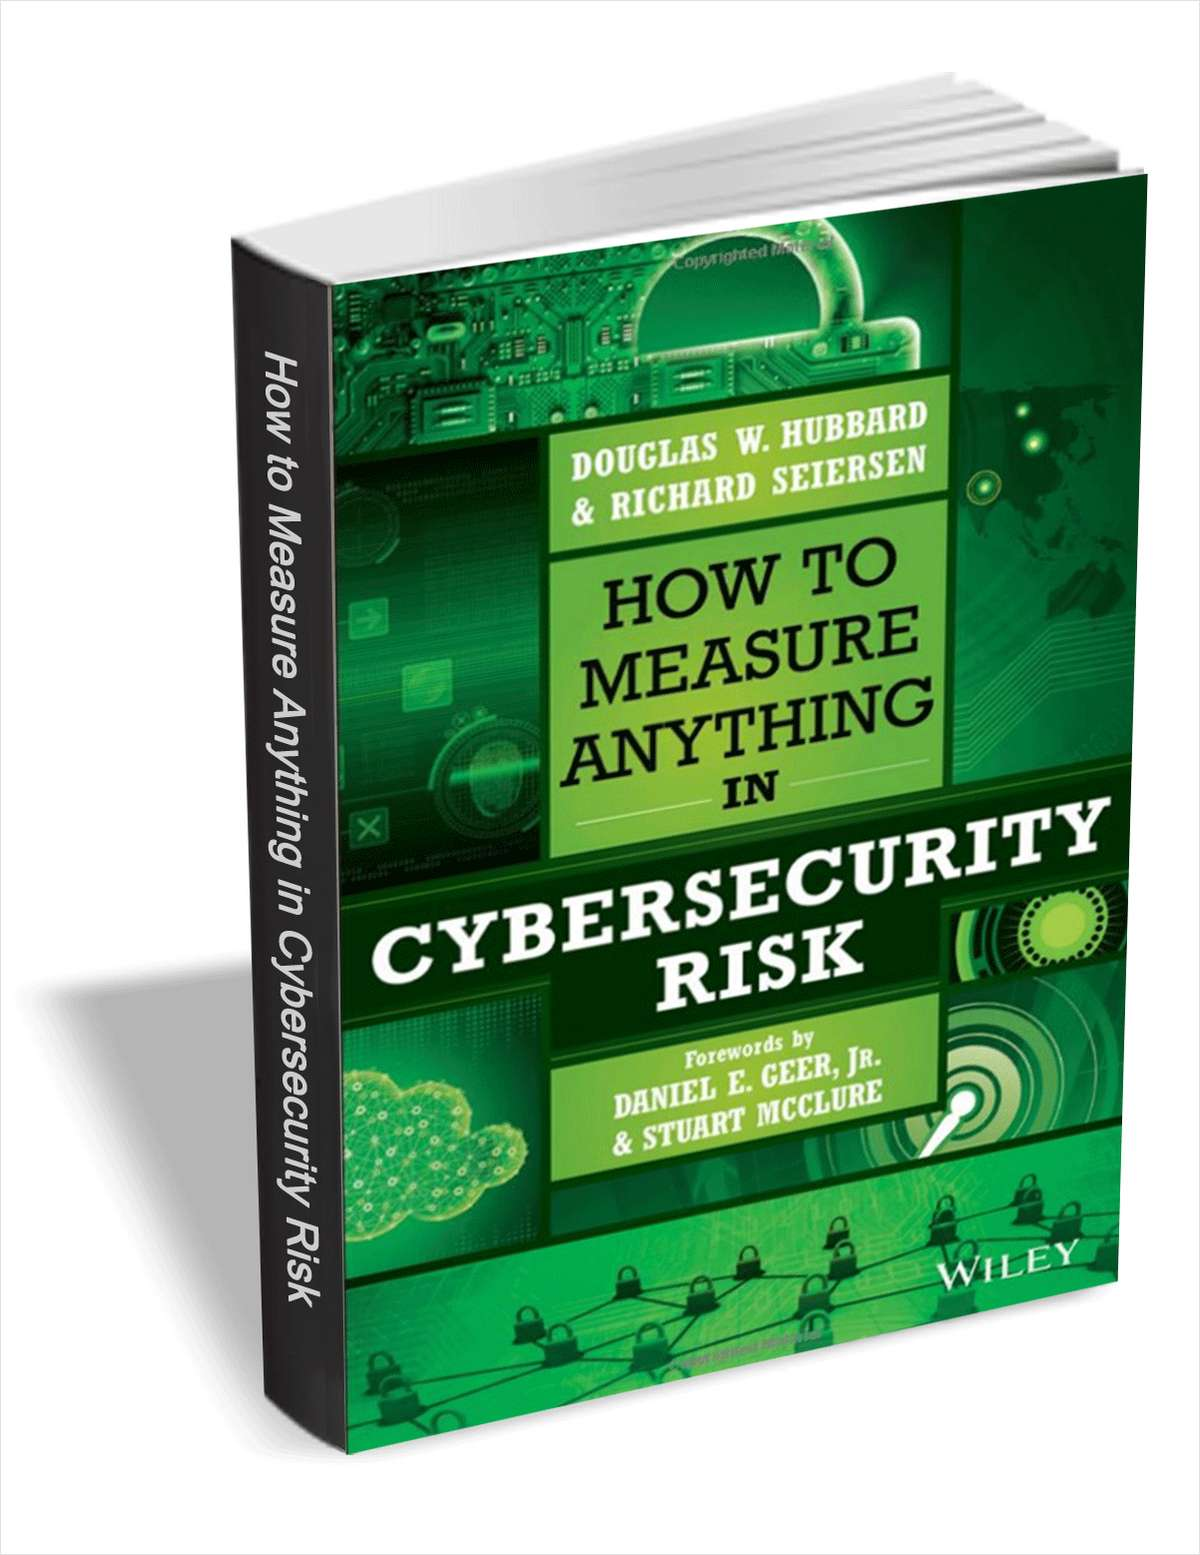 How to Measure Anything in Cybersecurity Risk ($29 Value) FREE For a Limited Time